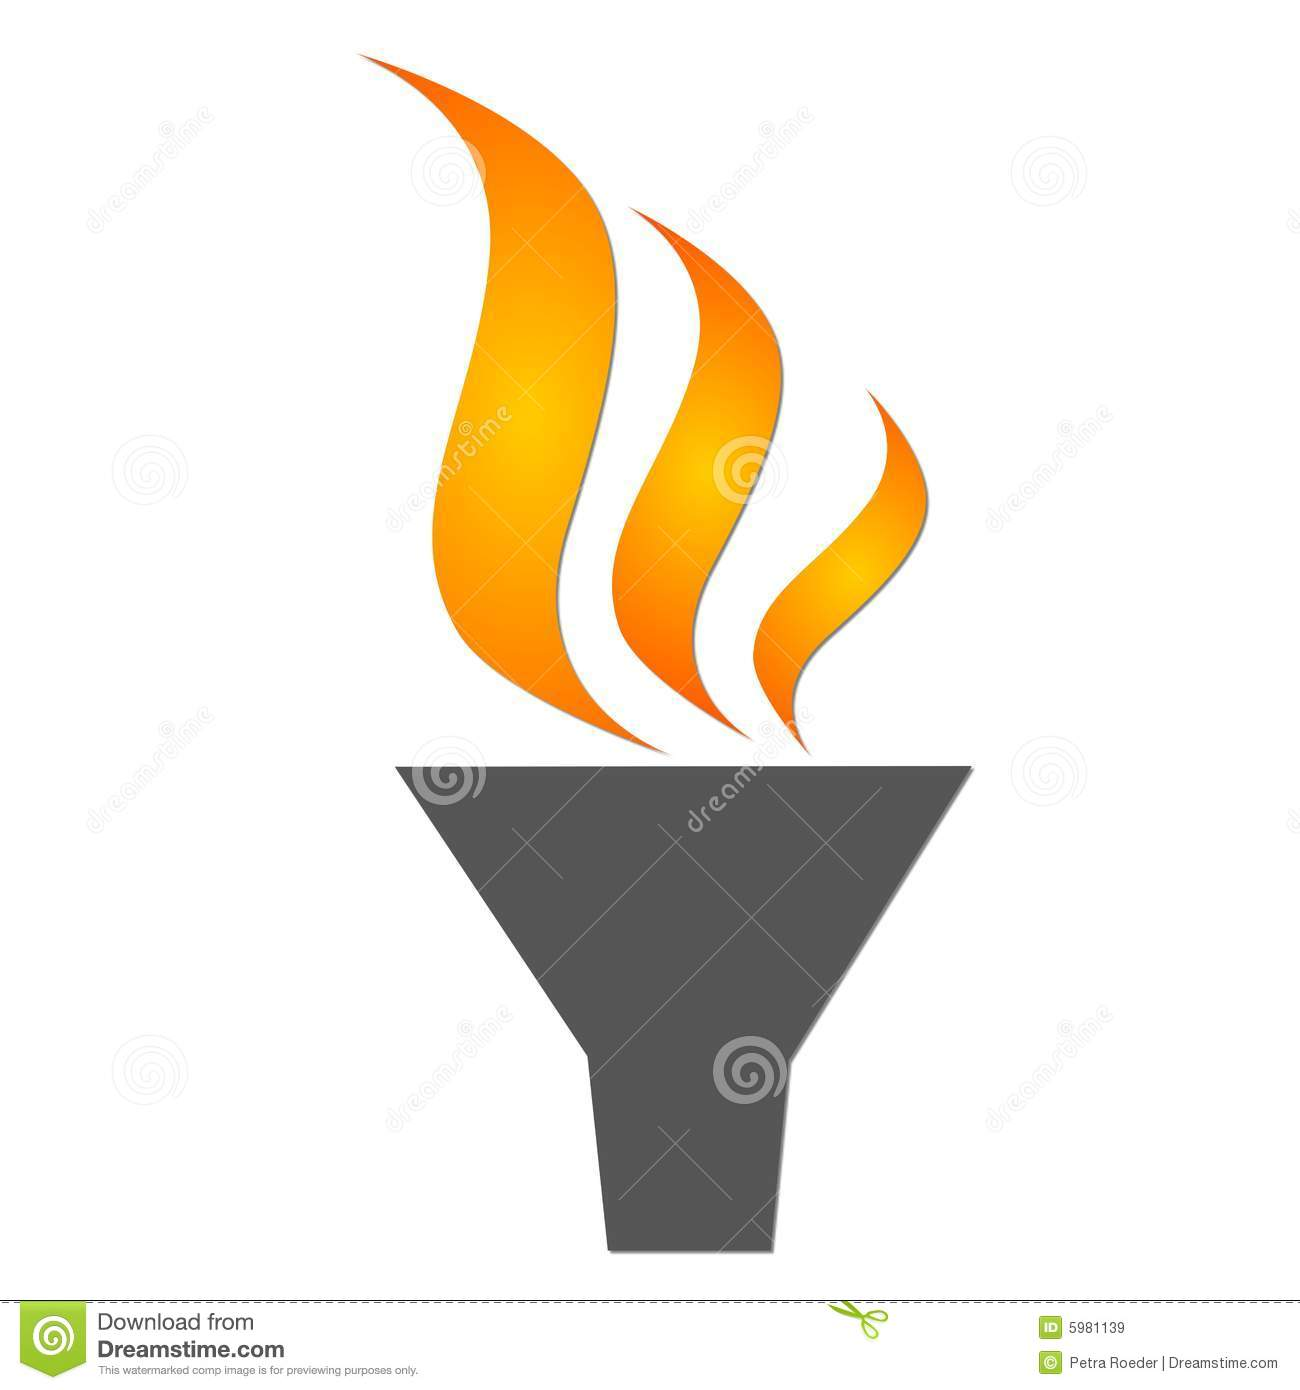 hight resolution of 1300x1390 flame clipart torch flame free collection download and share